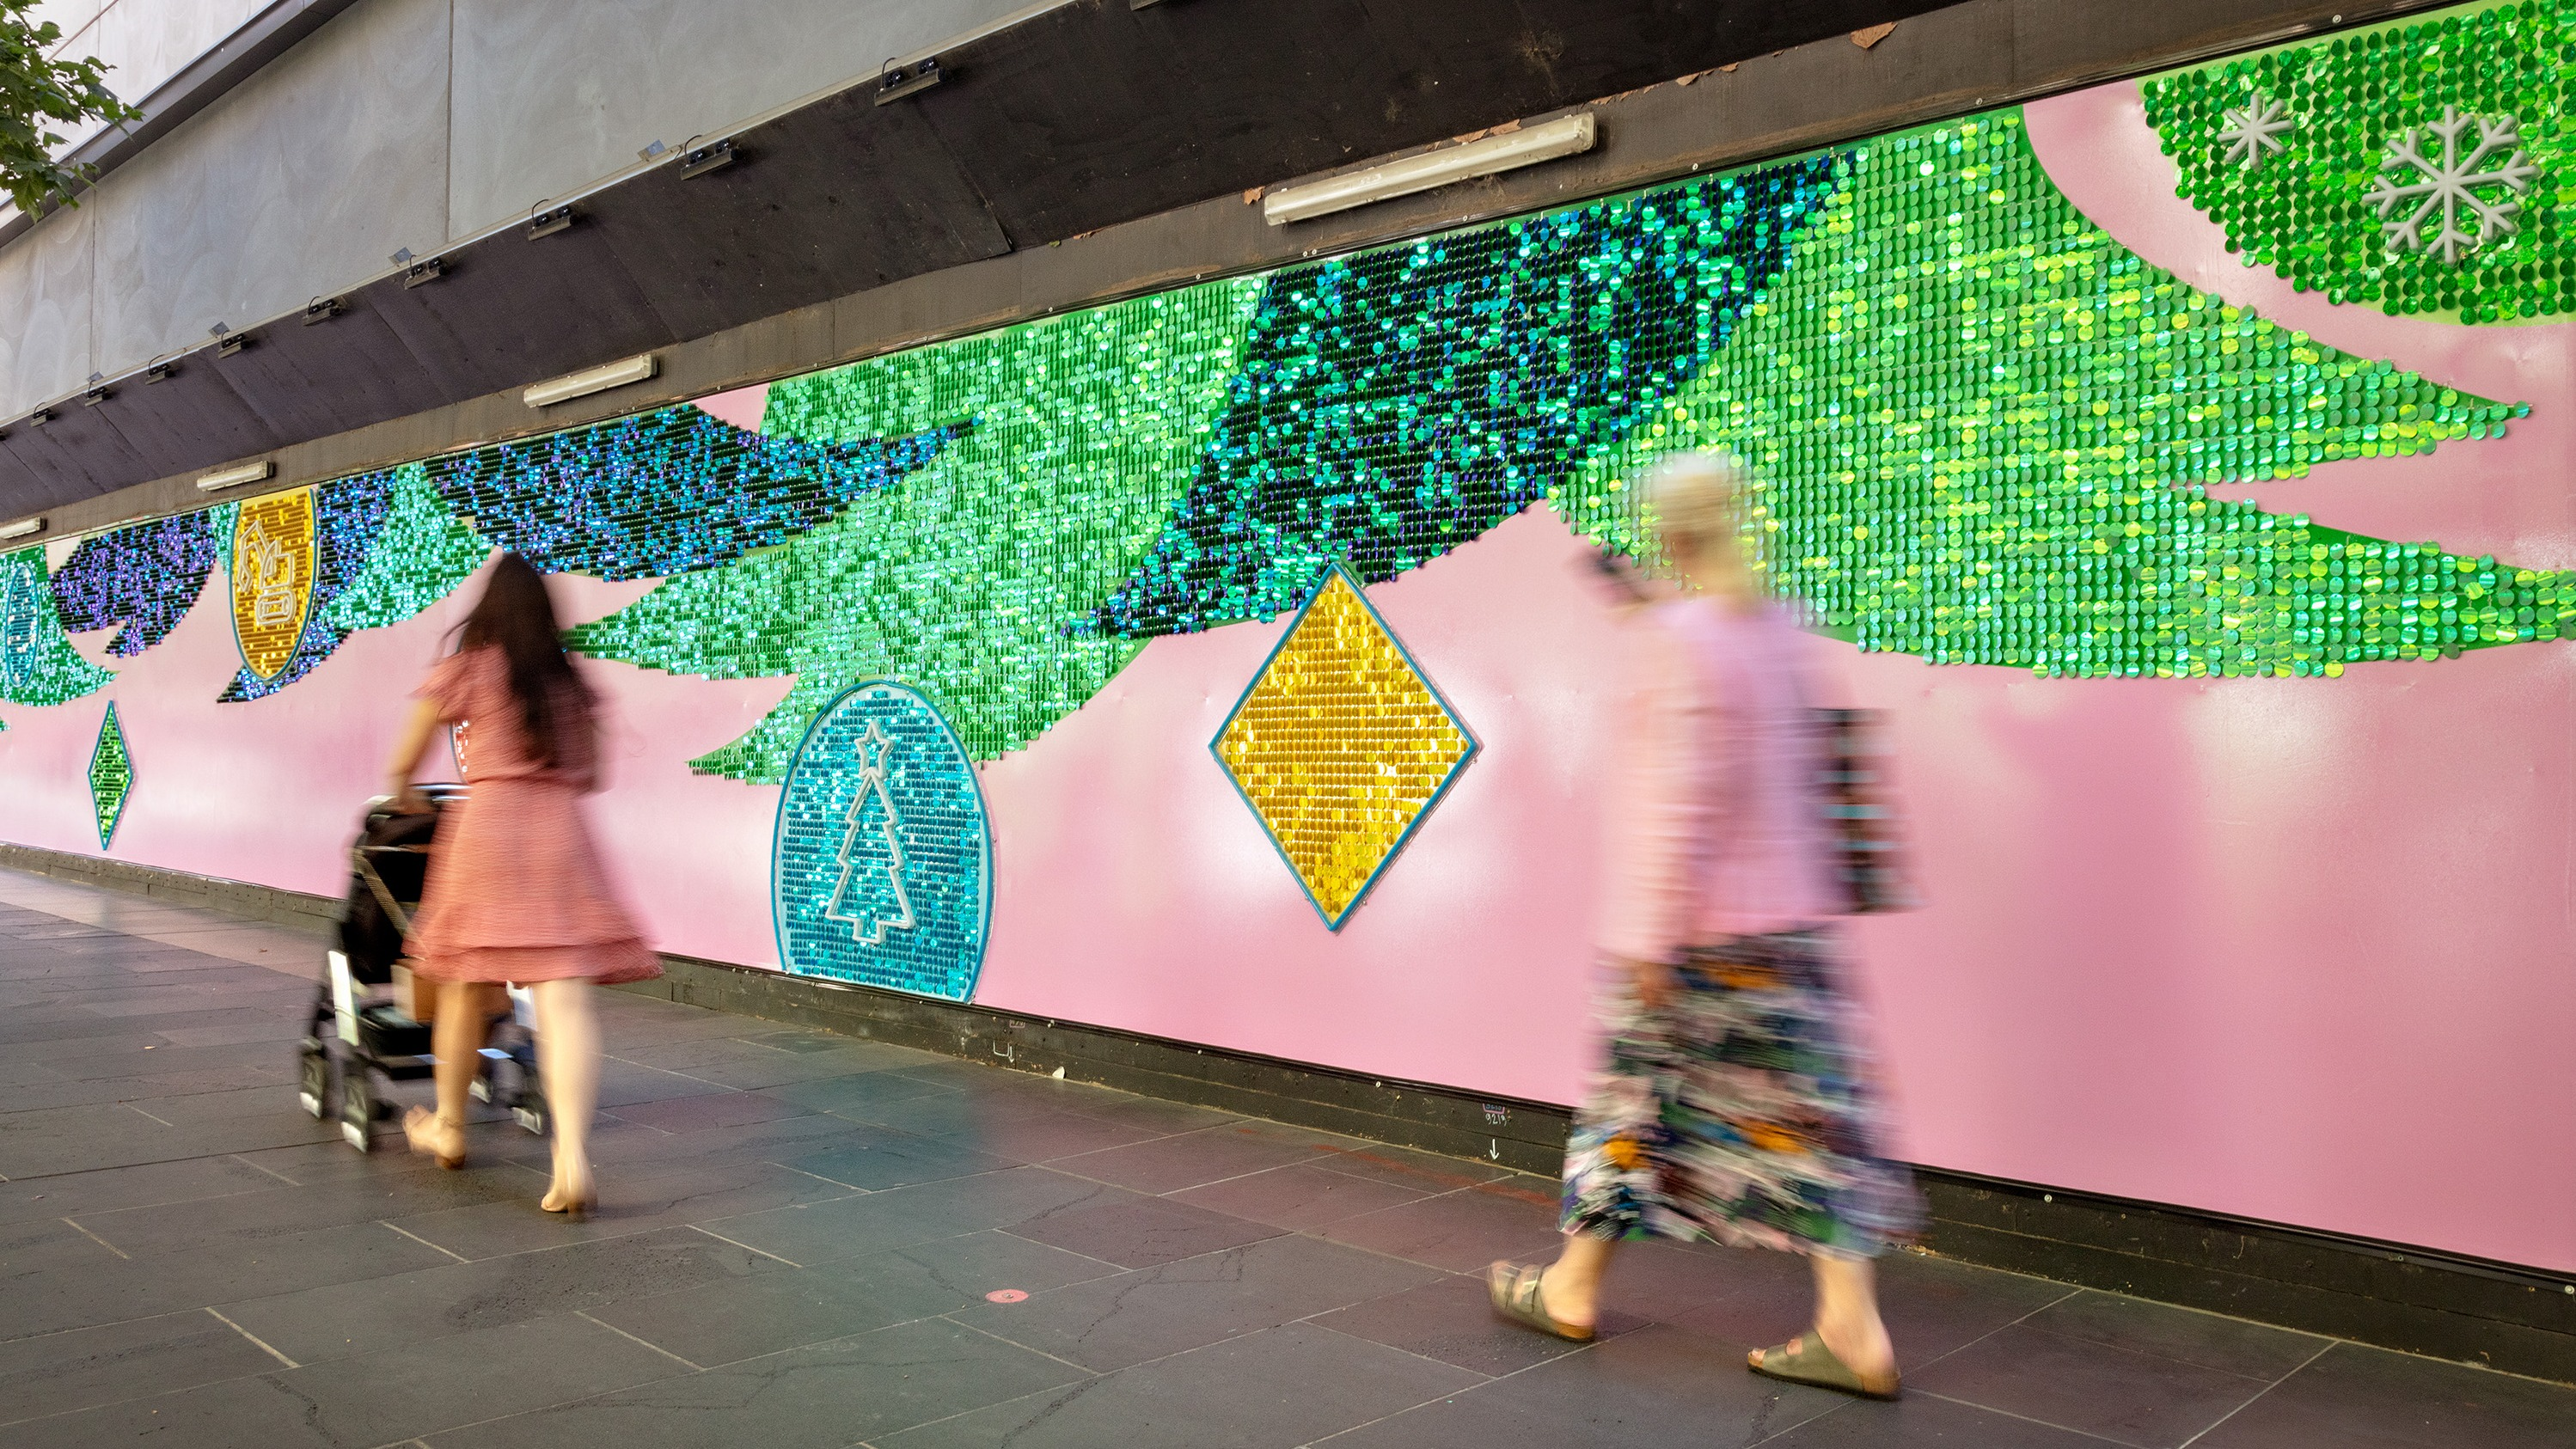 People walk past a colourful mural with shimmering Christmas trees.